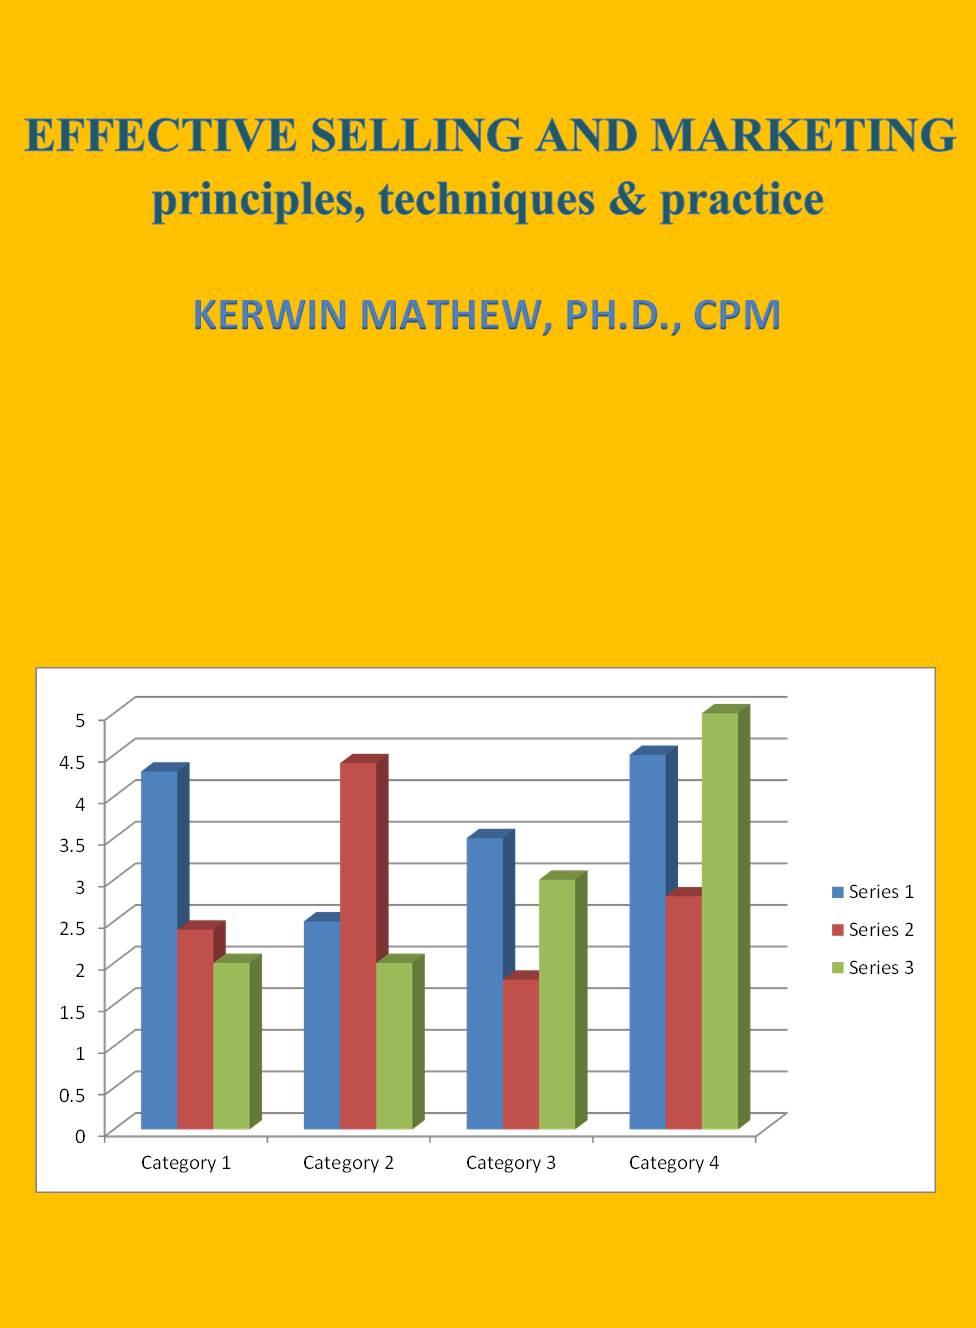 Kerwin Mathew - EFFECTIVE SELLING AND MARKETING principles, techniques & practice